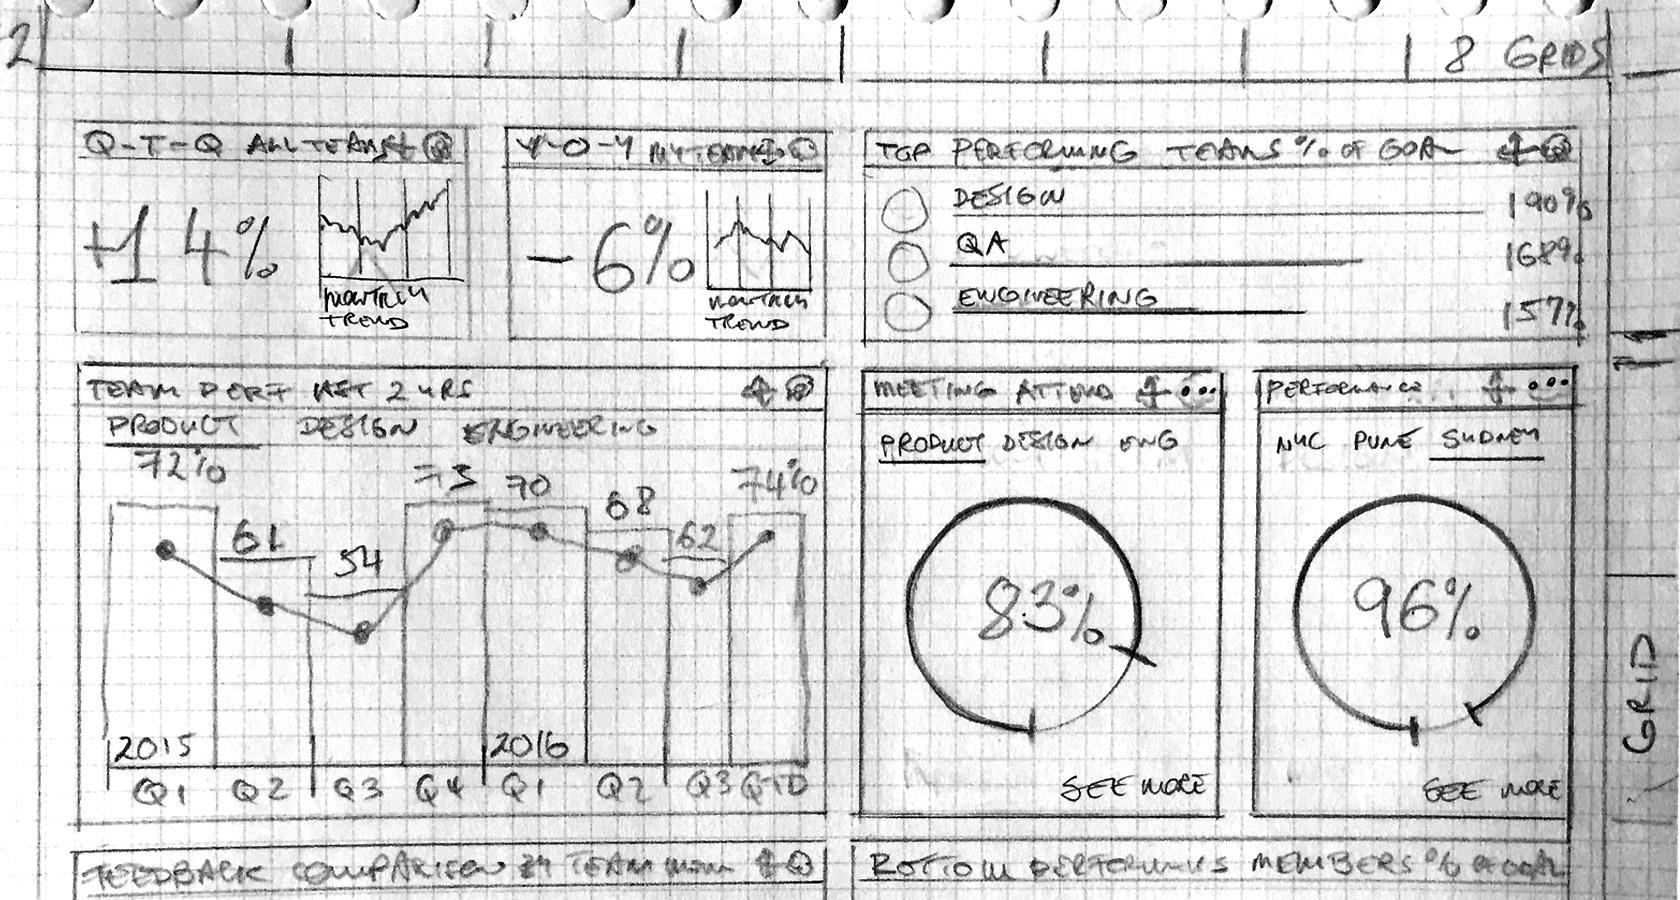 Wireframe sketch, wireframes for website prototype